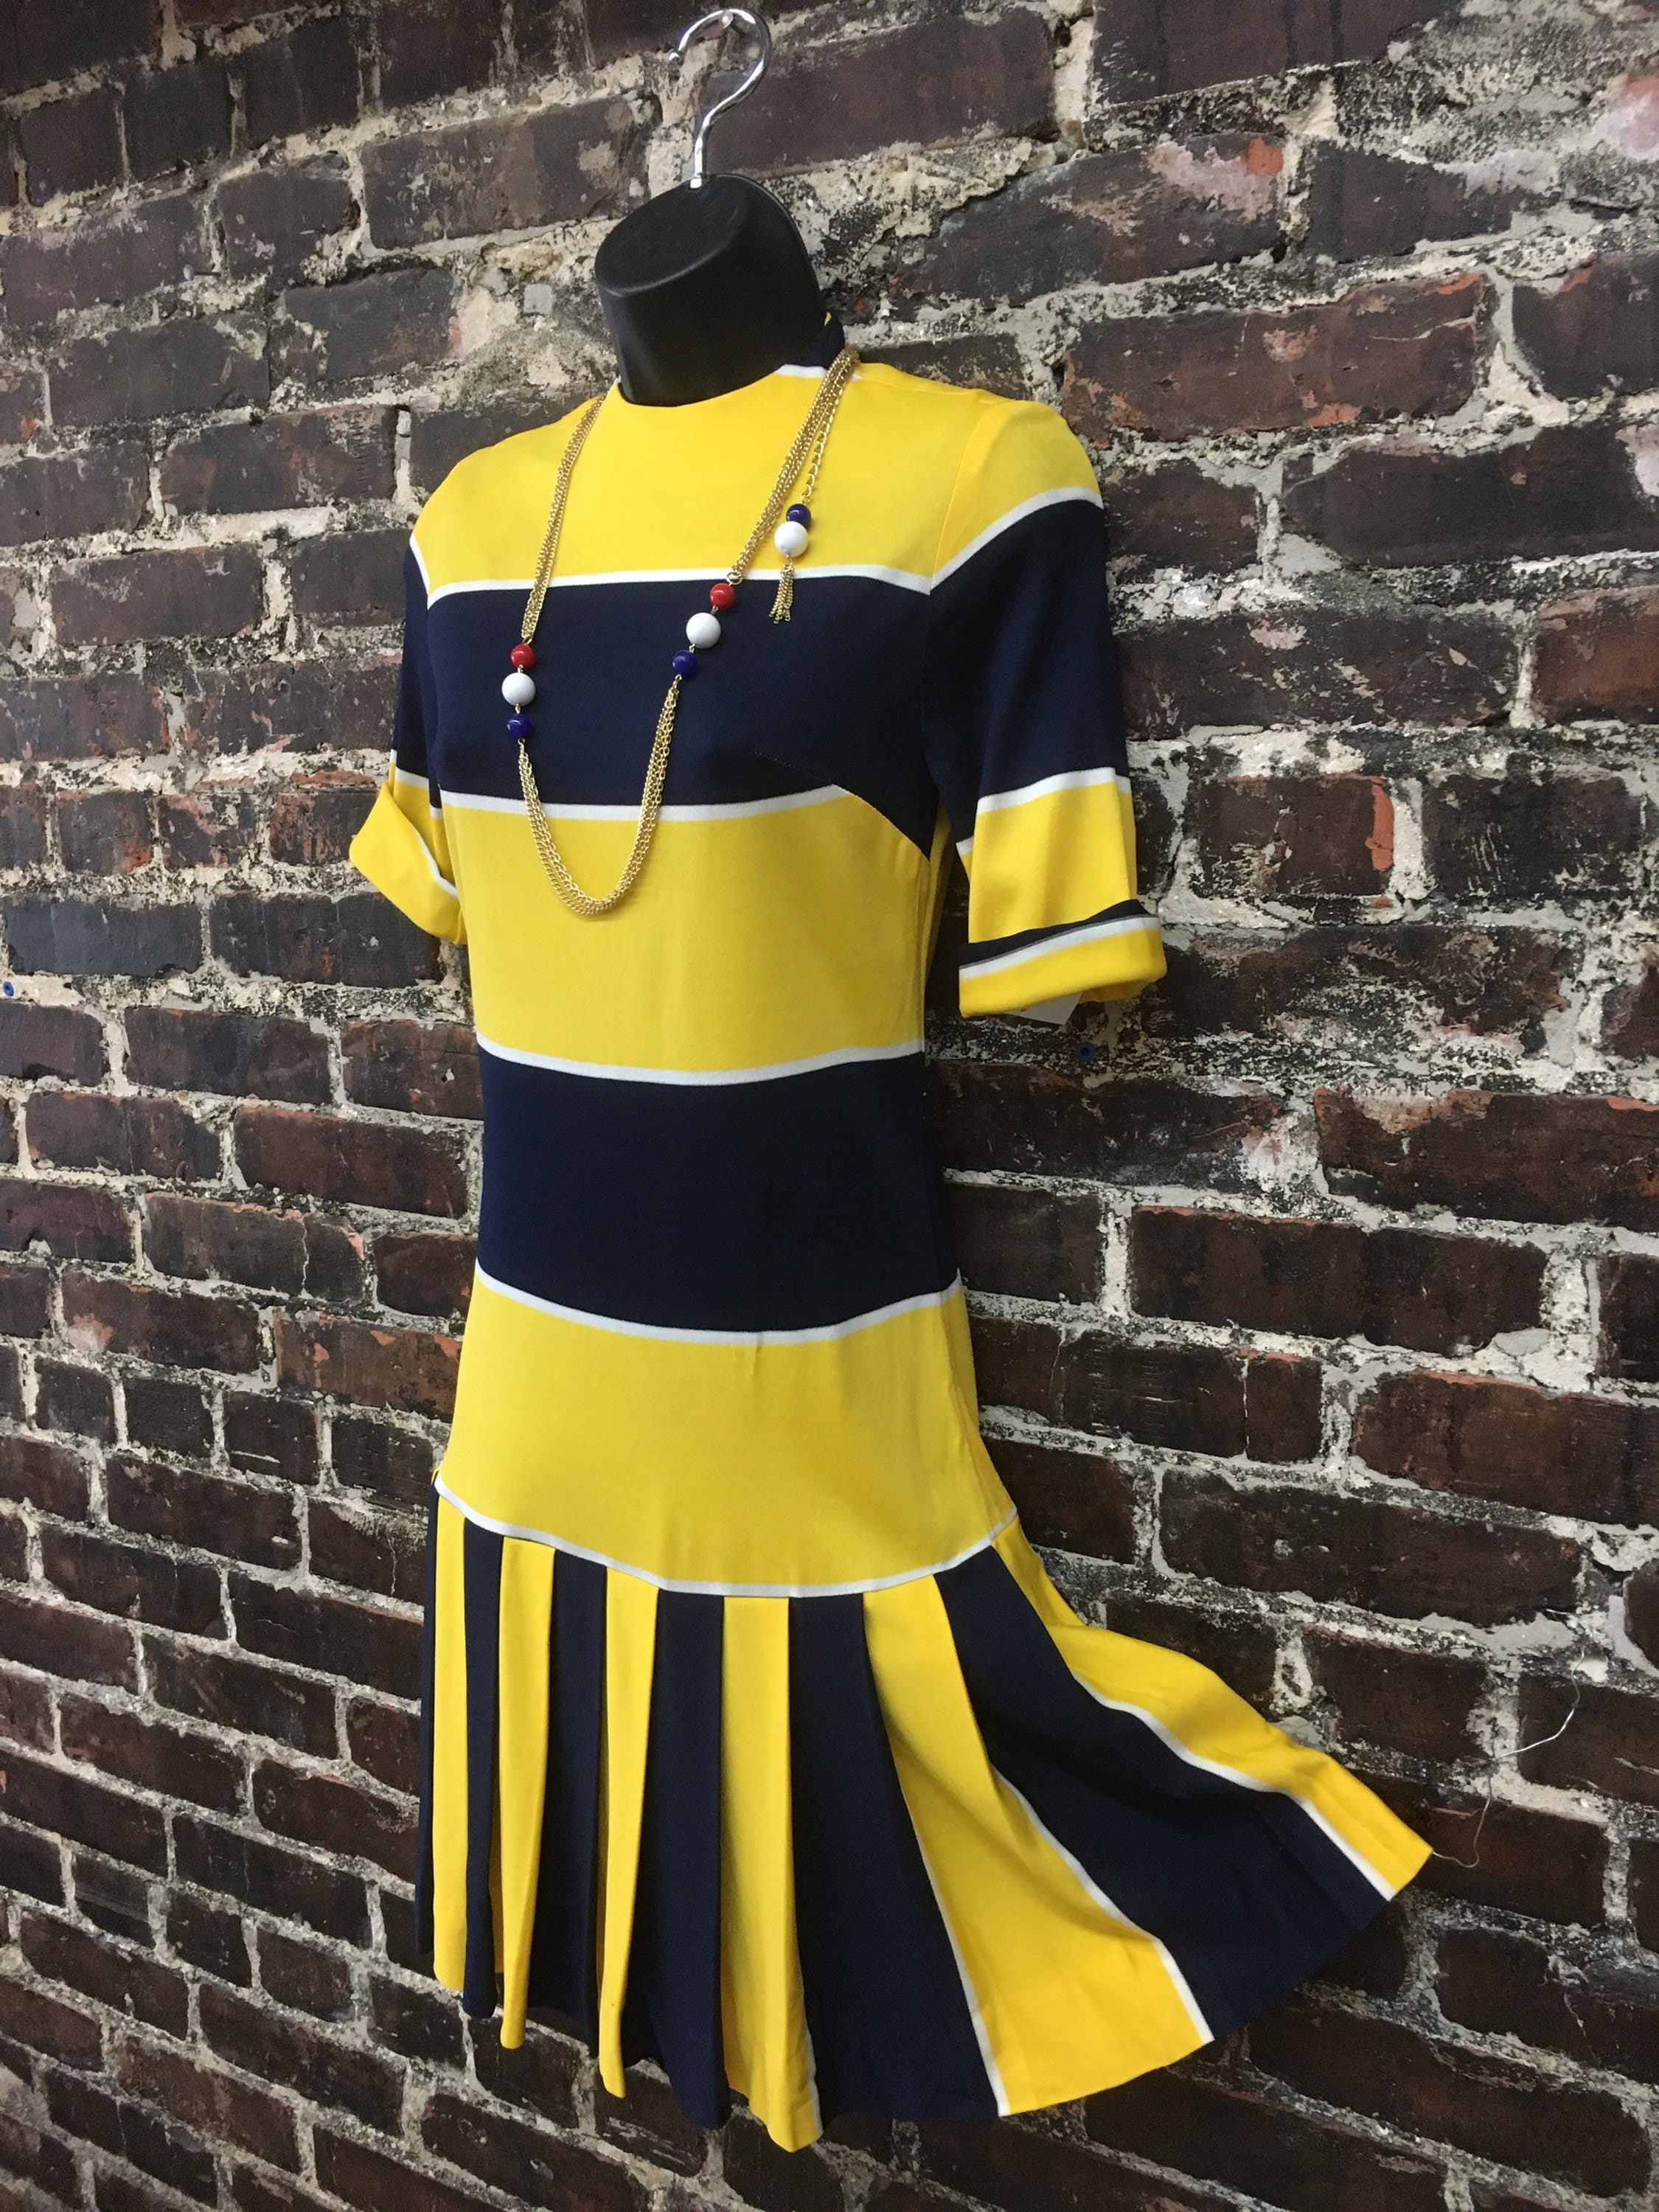 60s -70s Jewelry – Necklaces, Earrings, Rings, Bracelets 1960S Yellow Striped Dress. 60S Drop Waist Dress With Pleated Skirt.  Navy Blue Stripes By Jerell Of Texas. Xxs Extra Small, 32 B $60.00 AT vintagedancer.com